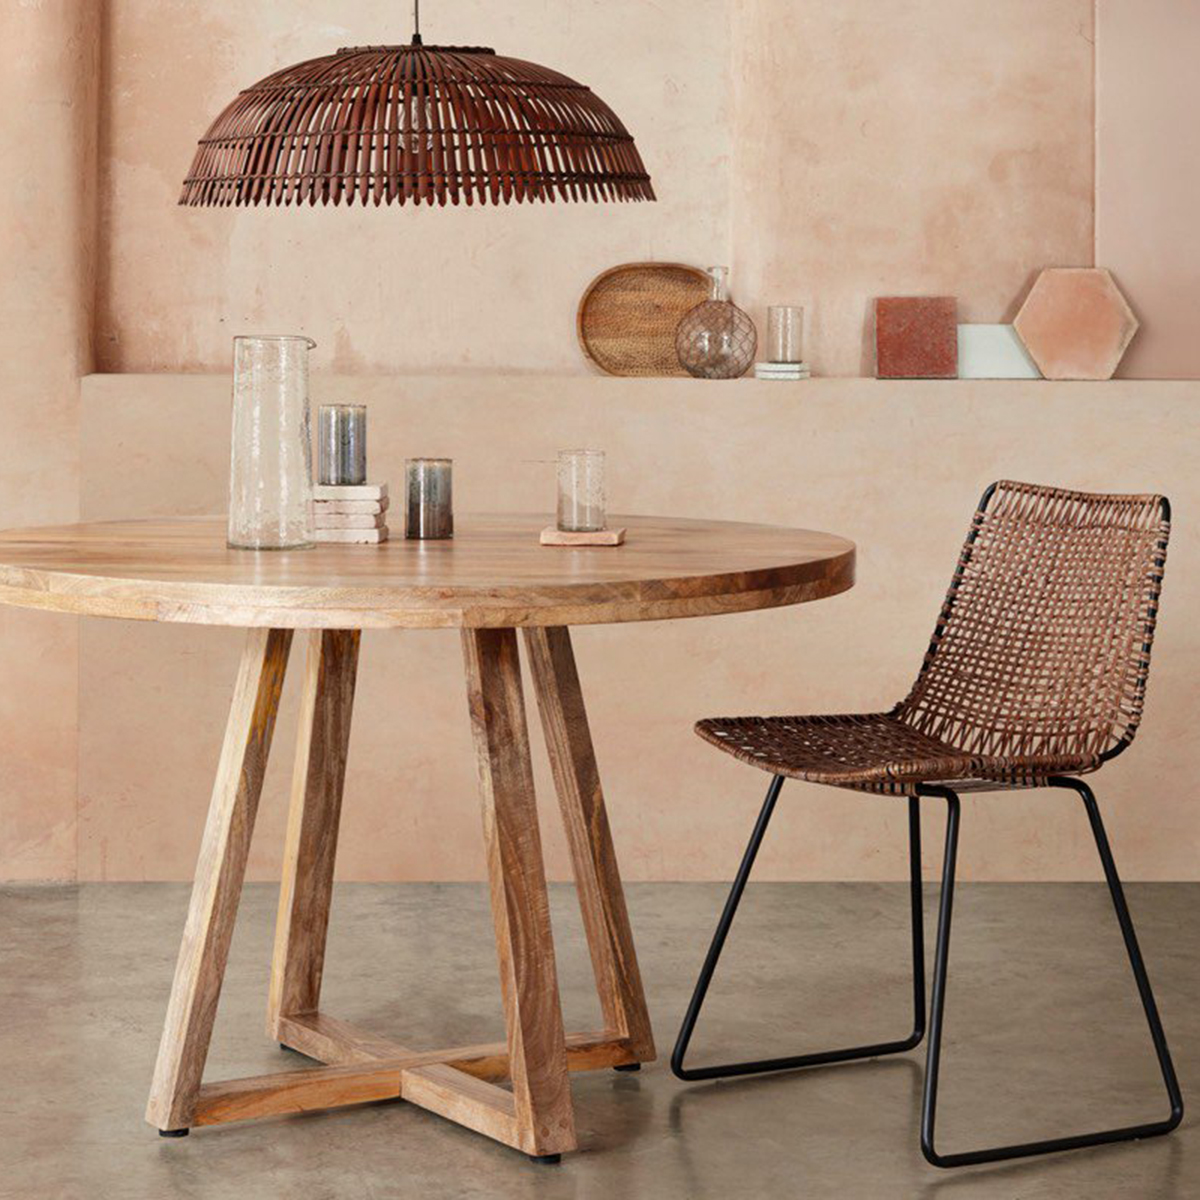 interior designer sophie robinson reports on the interior design trends for 2019 including the trend for cane and rattan furniture